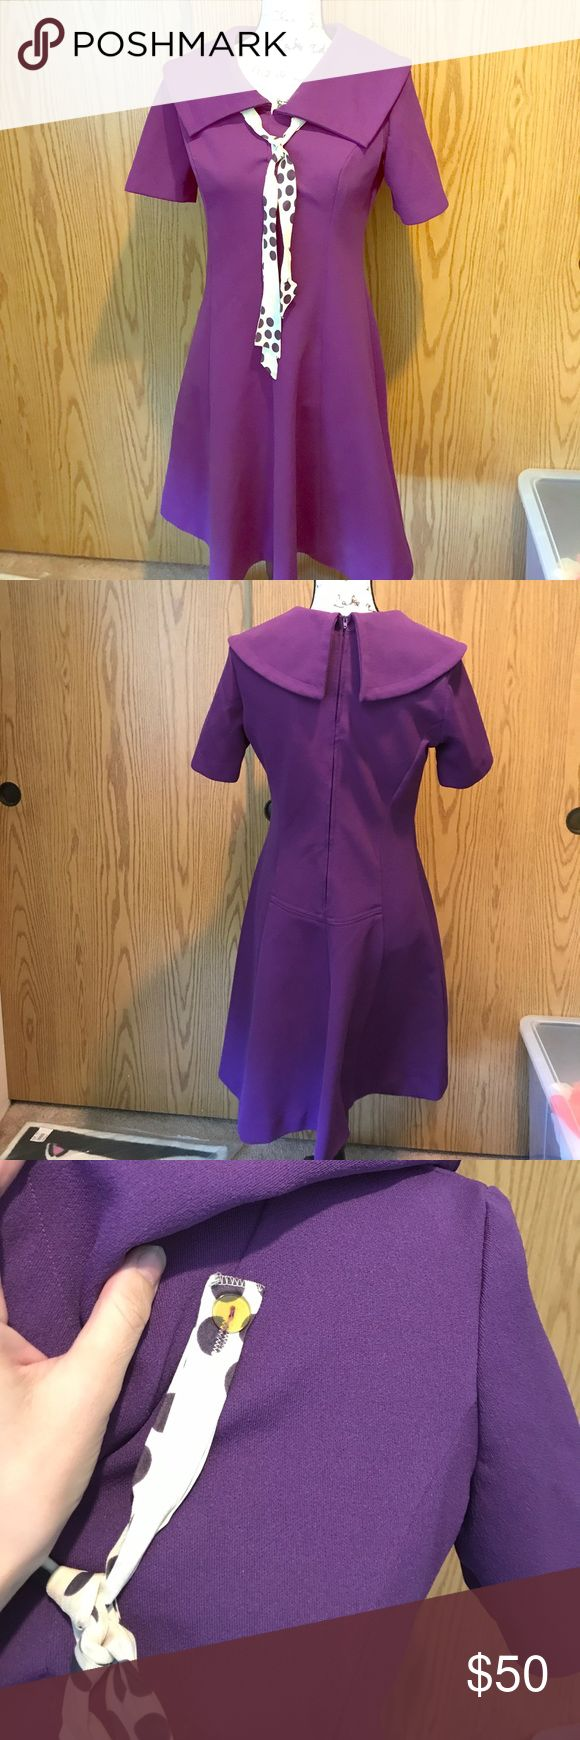 True vintage Mod librarian type dress w/ascot Perfect purple mad men secretary/librarian-hips/waist free bust pic measurement included - the attached ascot is my fav part not sure Dresses